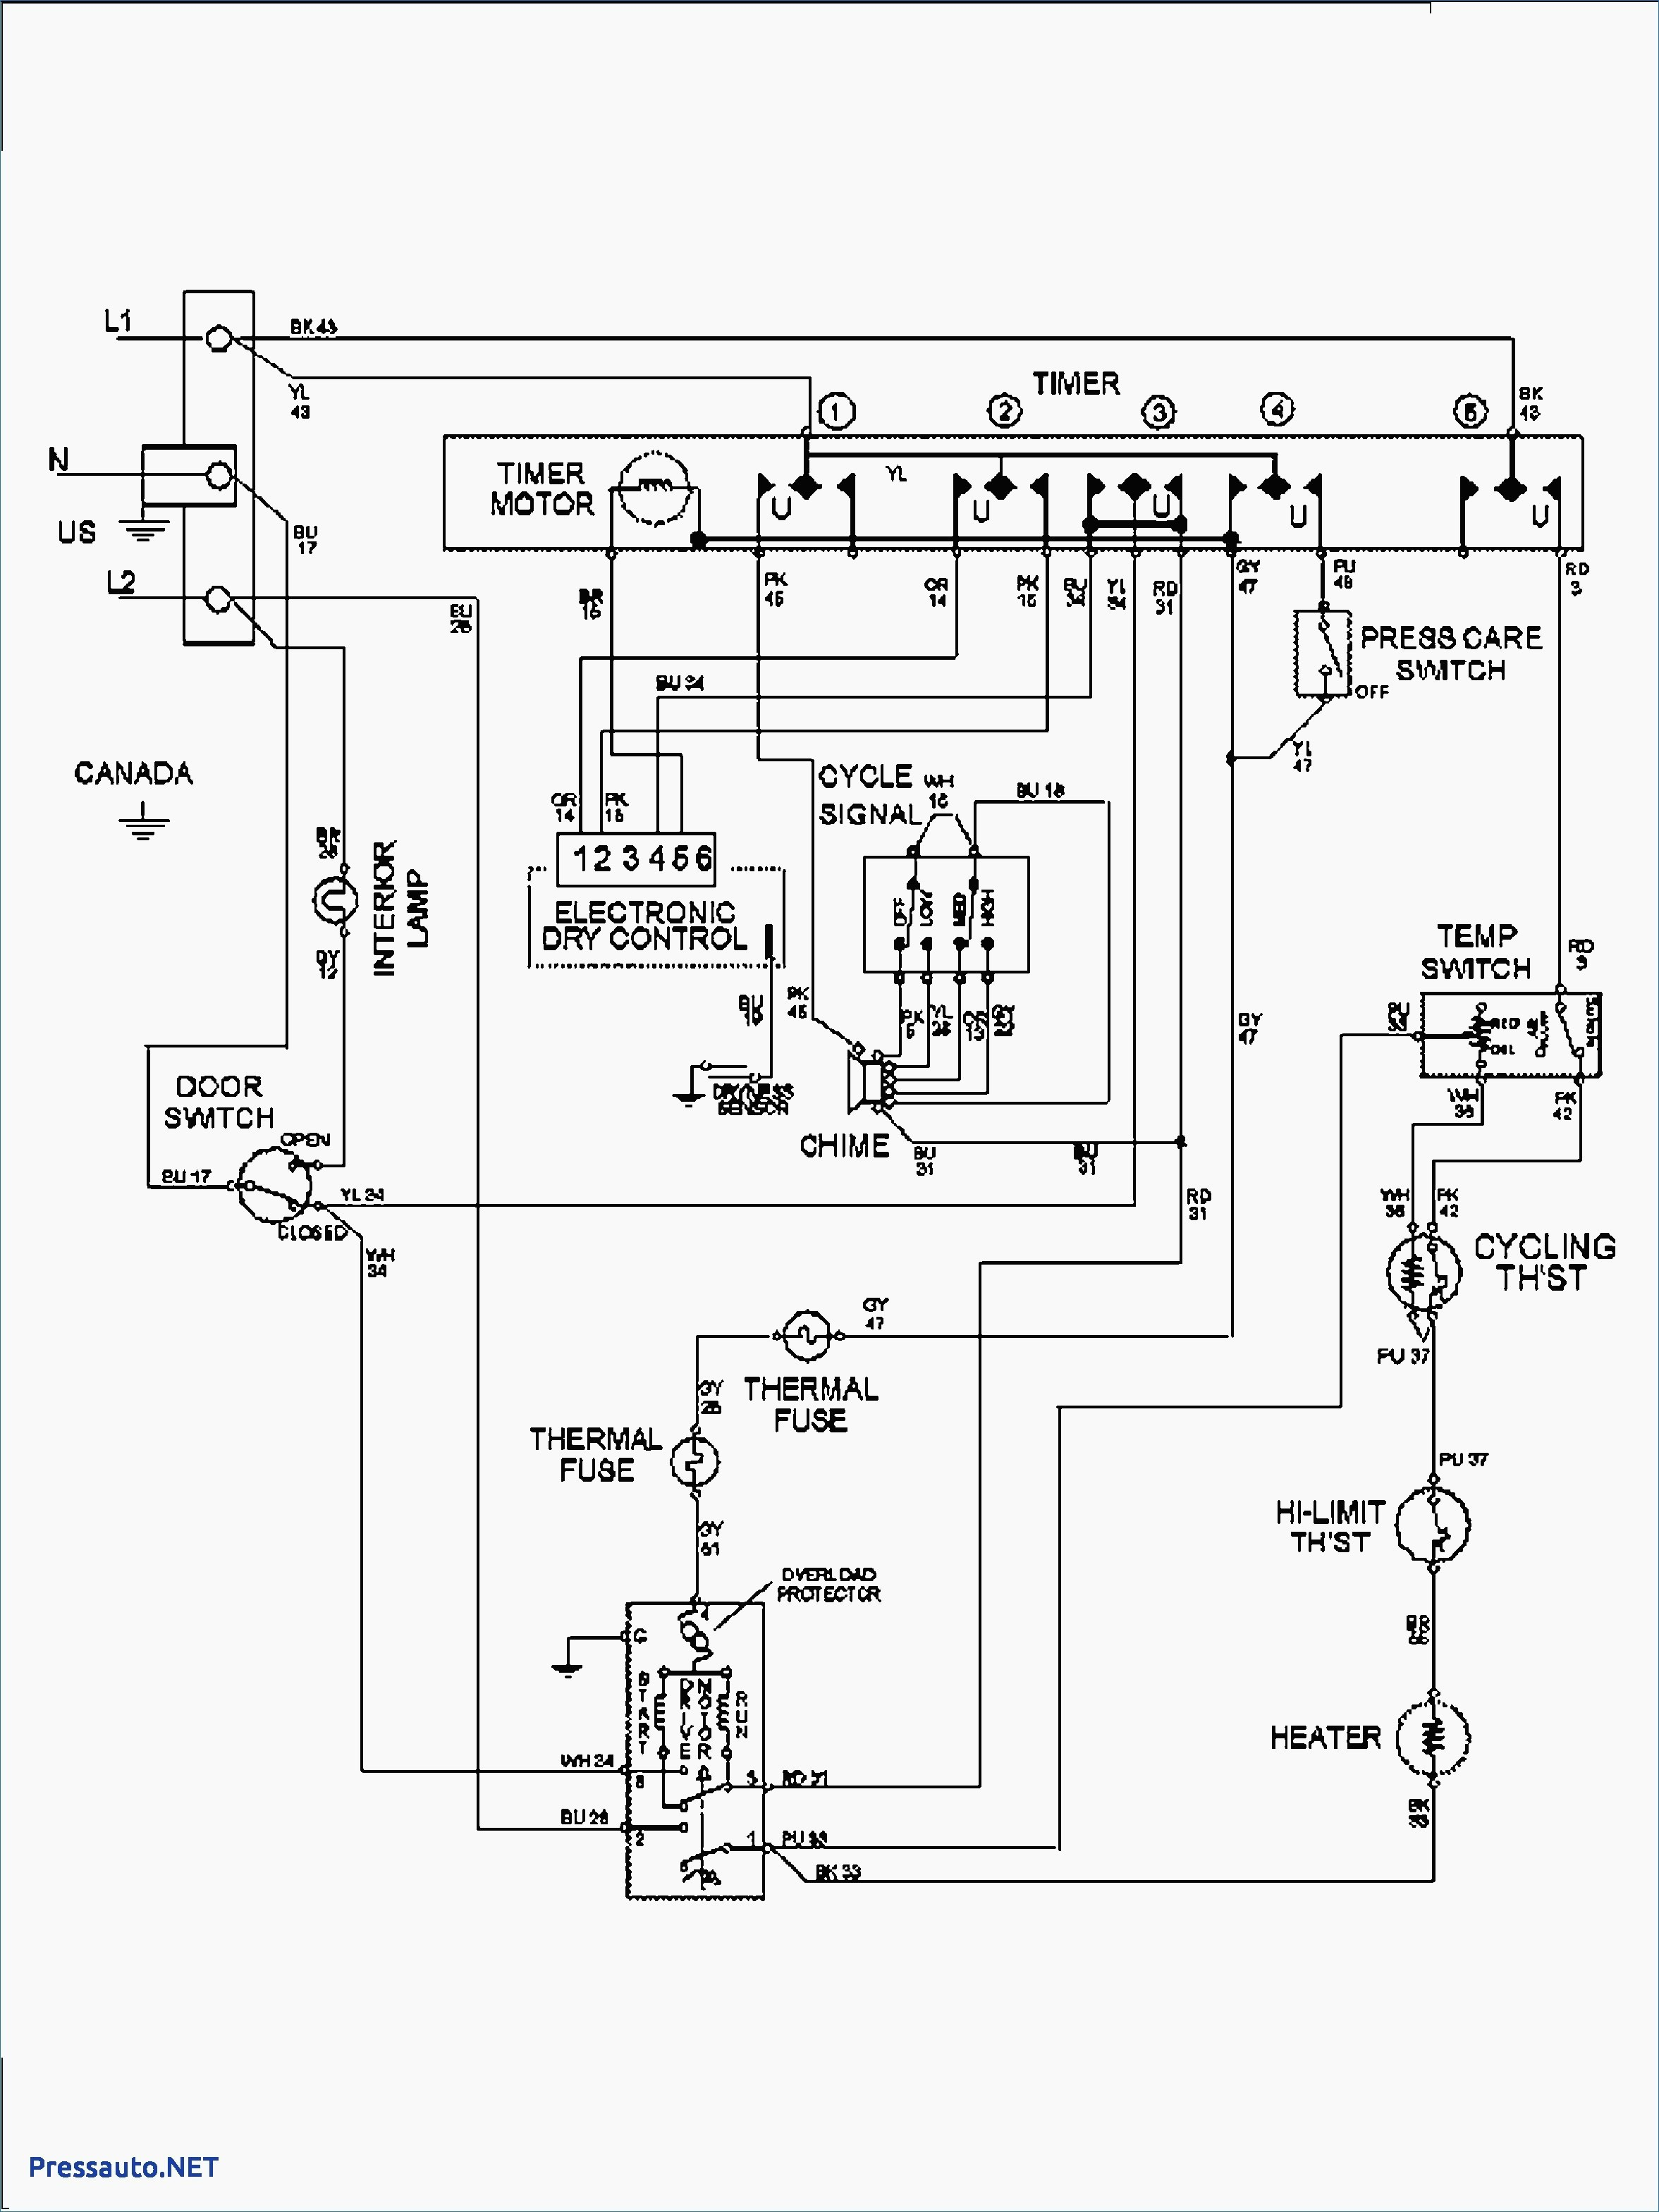 wiring diagram for whirlpool dryer